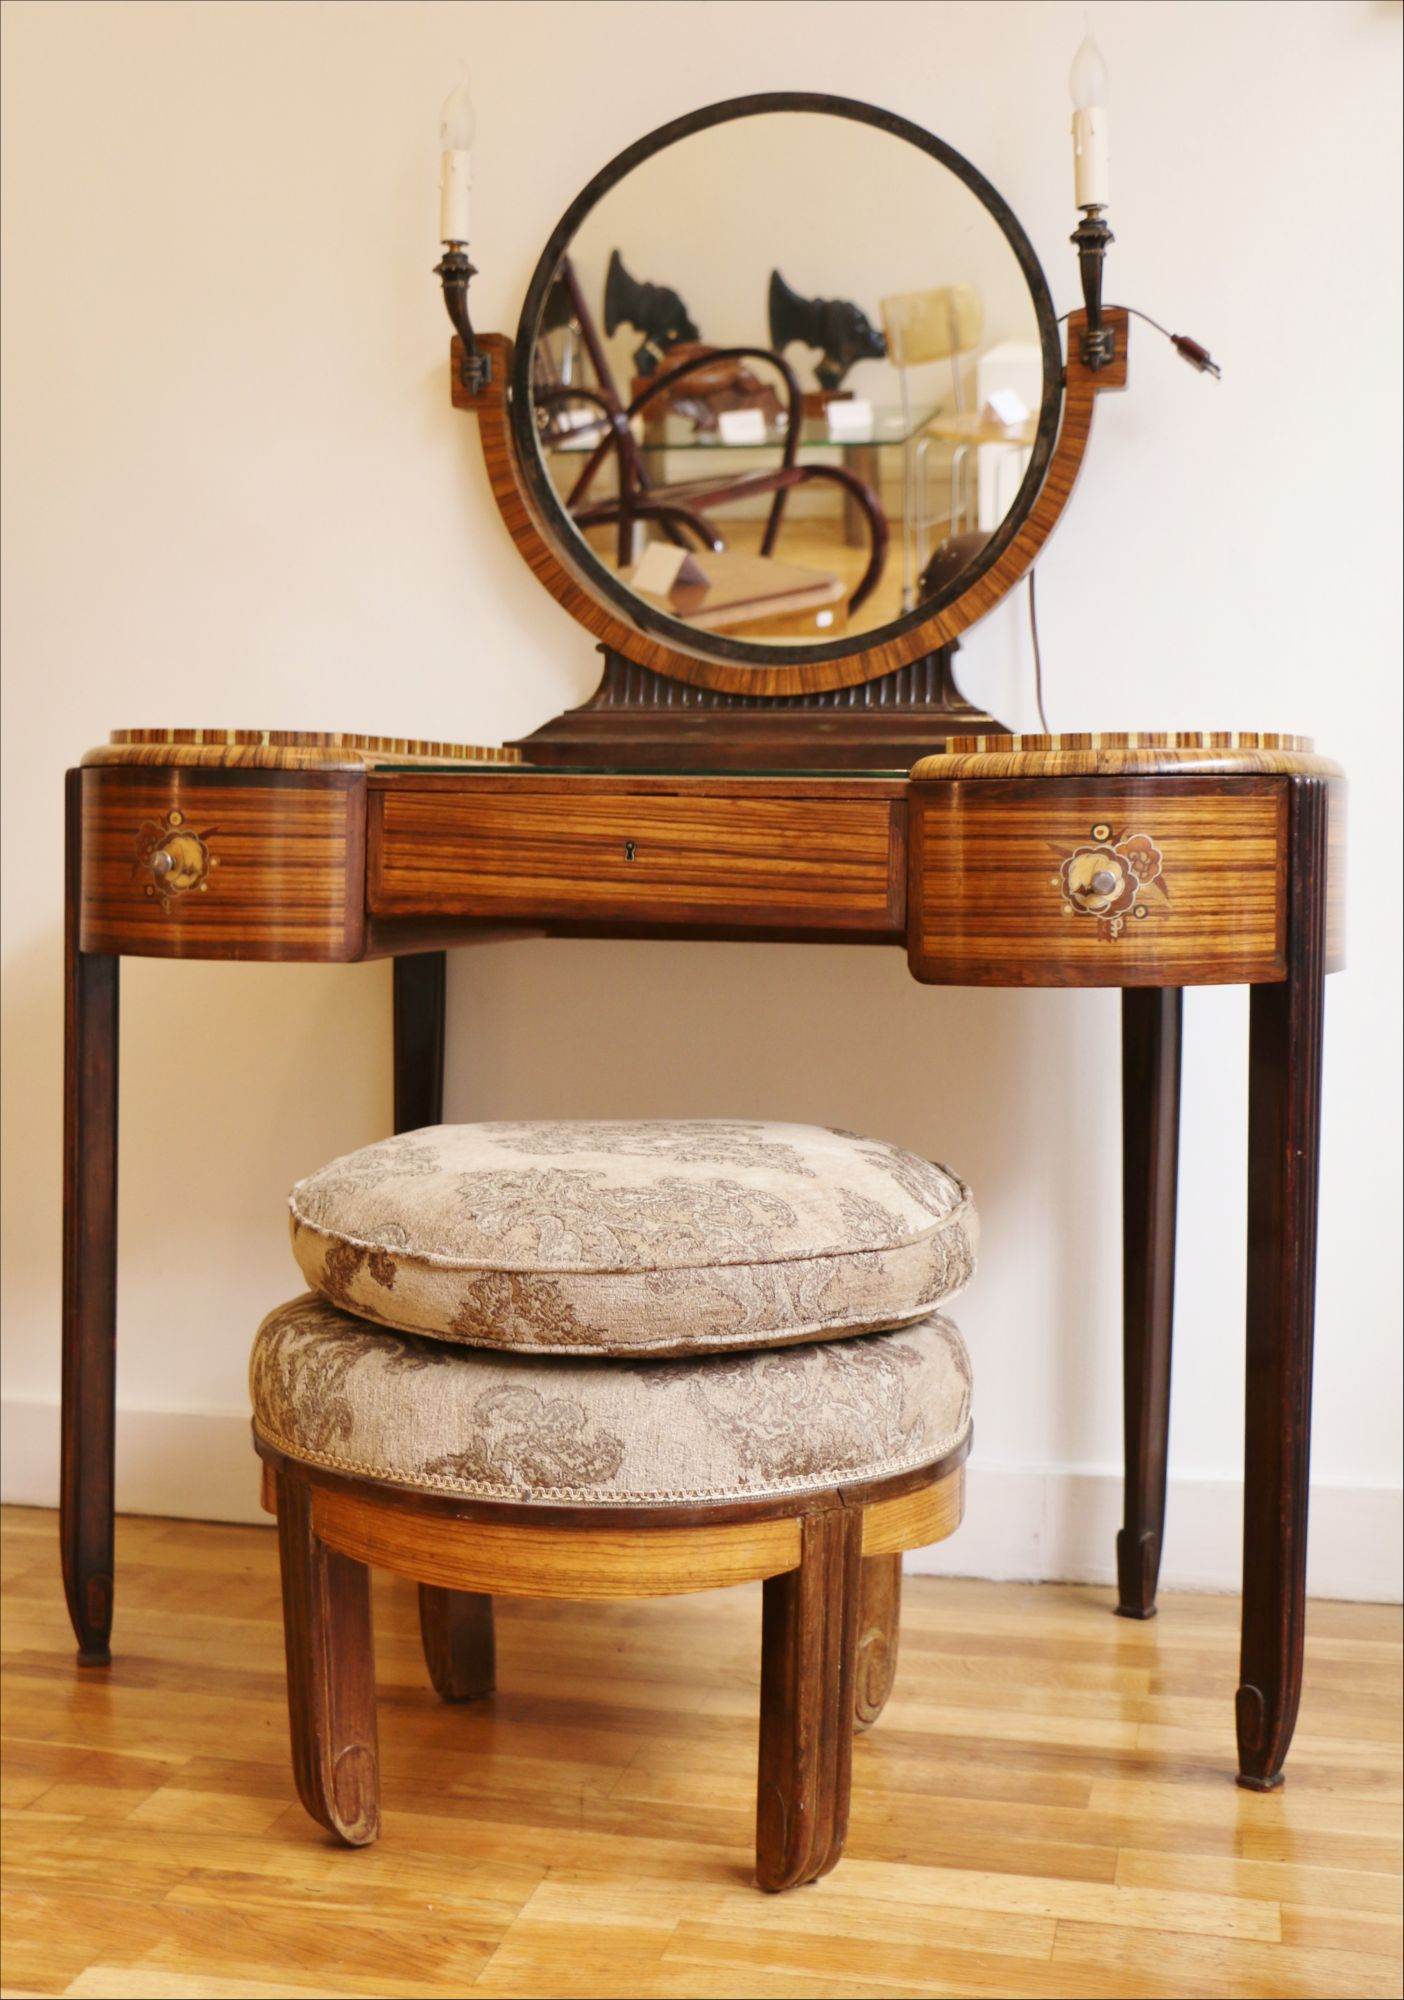 Outstanding Art Deco Dressing Table With Stool By Krieger Circa 1925 Gamerscity Chair Design For Home Gamerscityorg